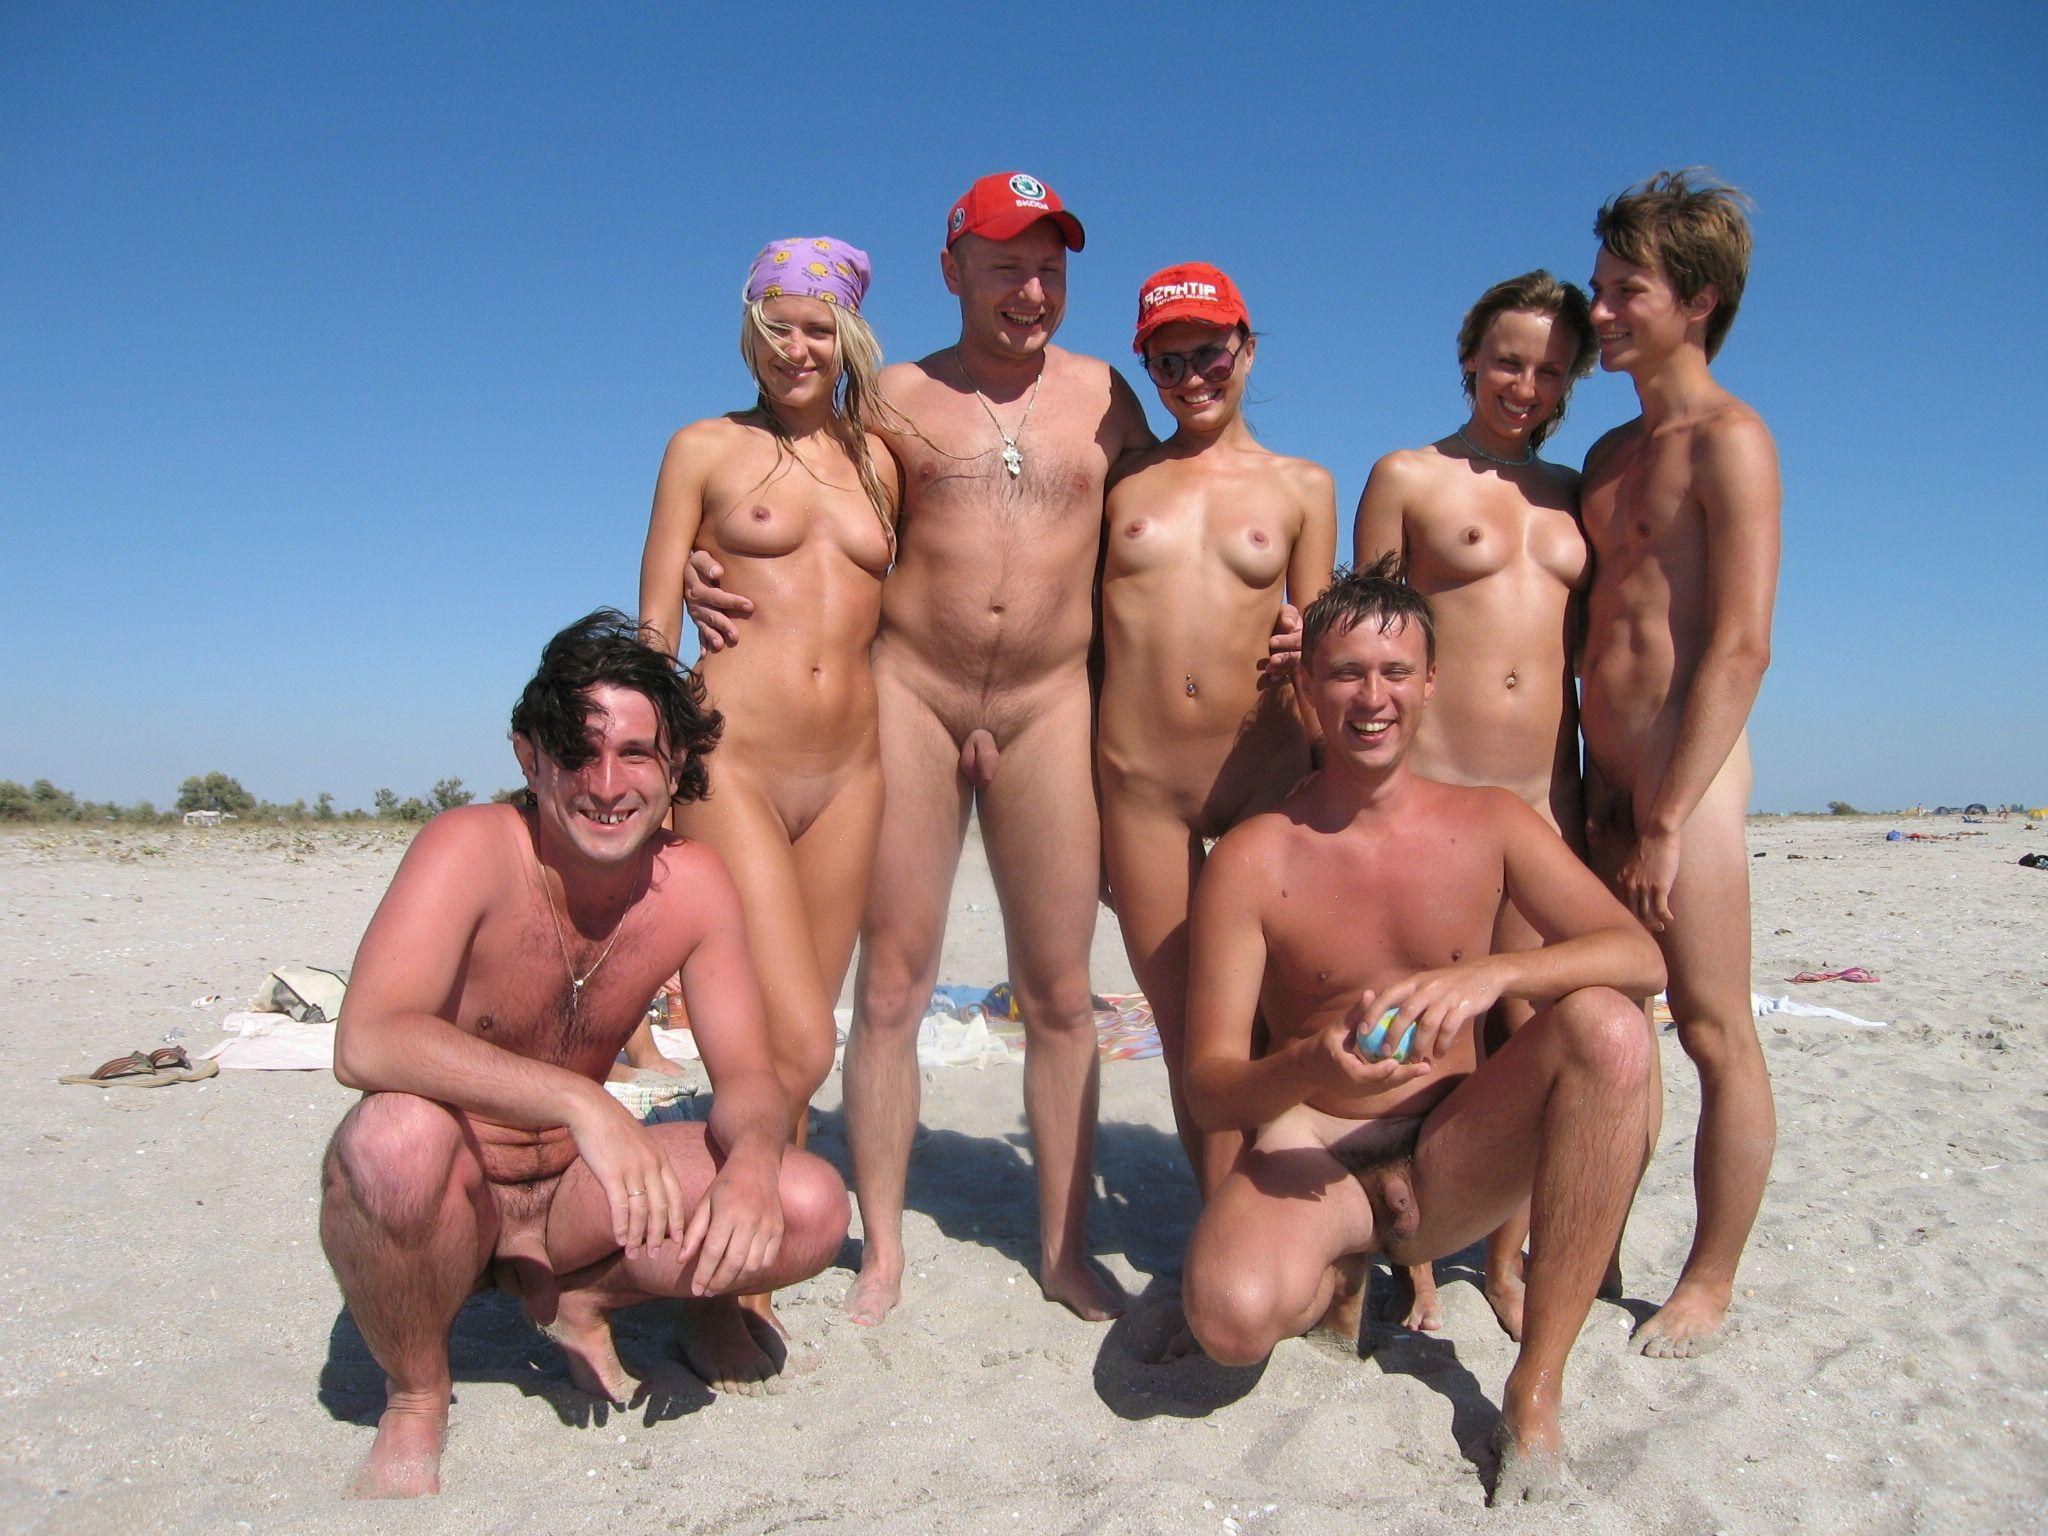 Description At the nudist beach.jpg